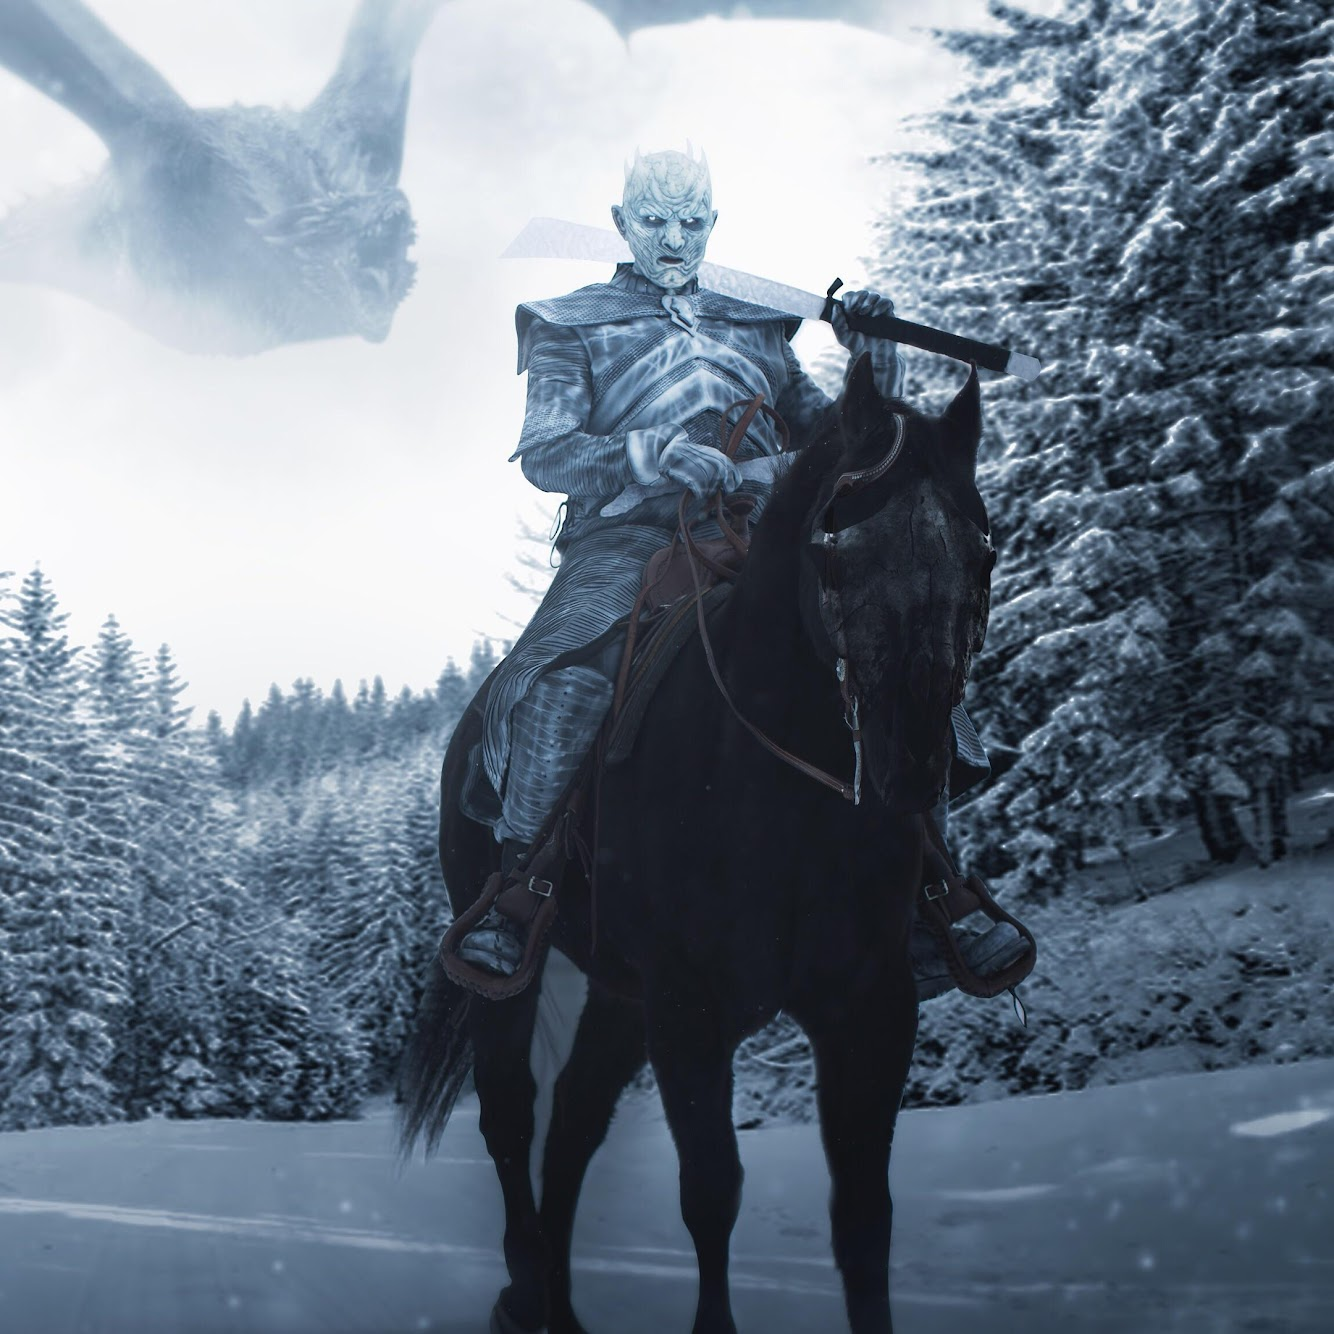 Game Of Thrones The Night King 1 10 Scale: Night King, Game Of Thrones, Season 8, 4K, #66 Wallpaper